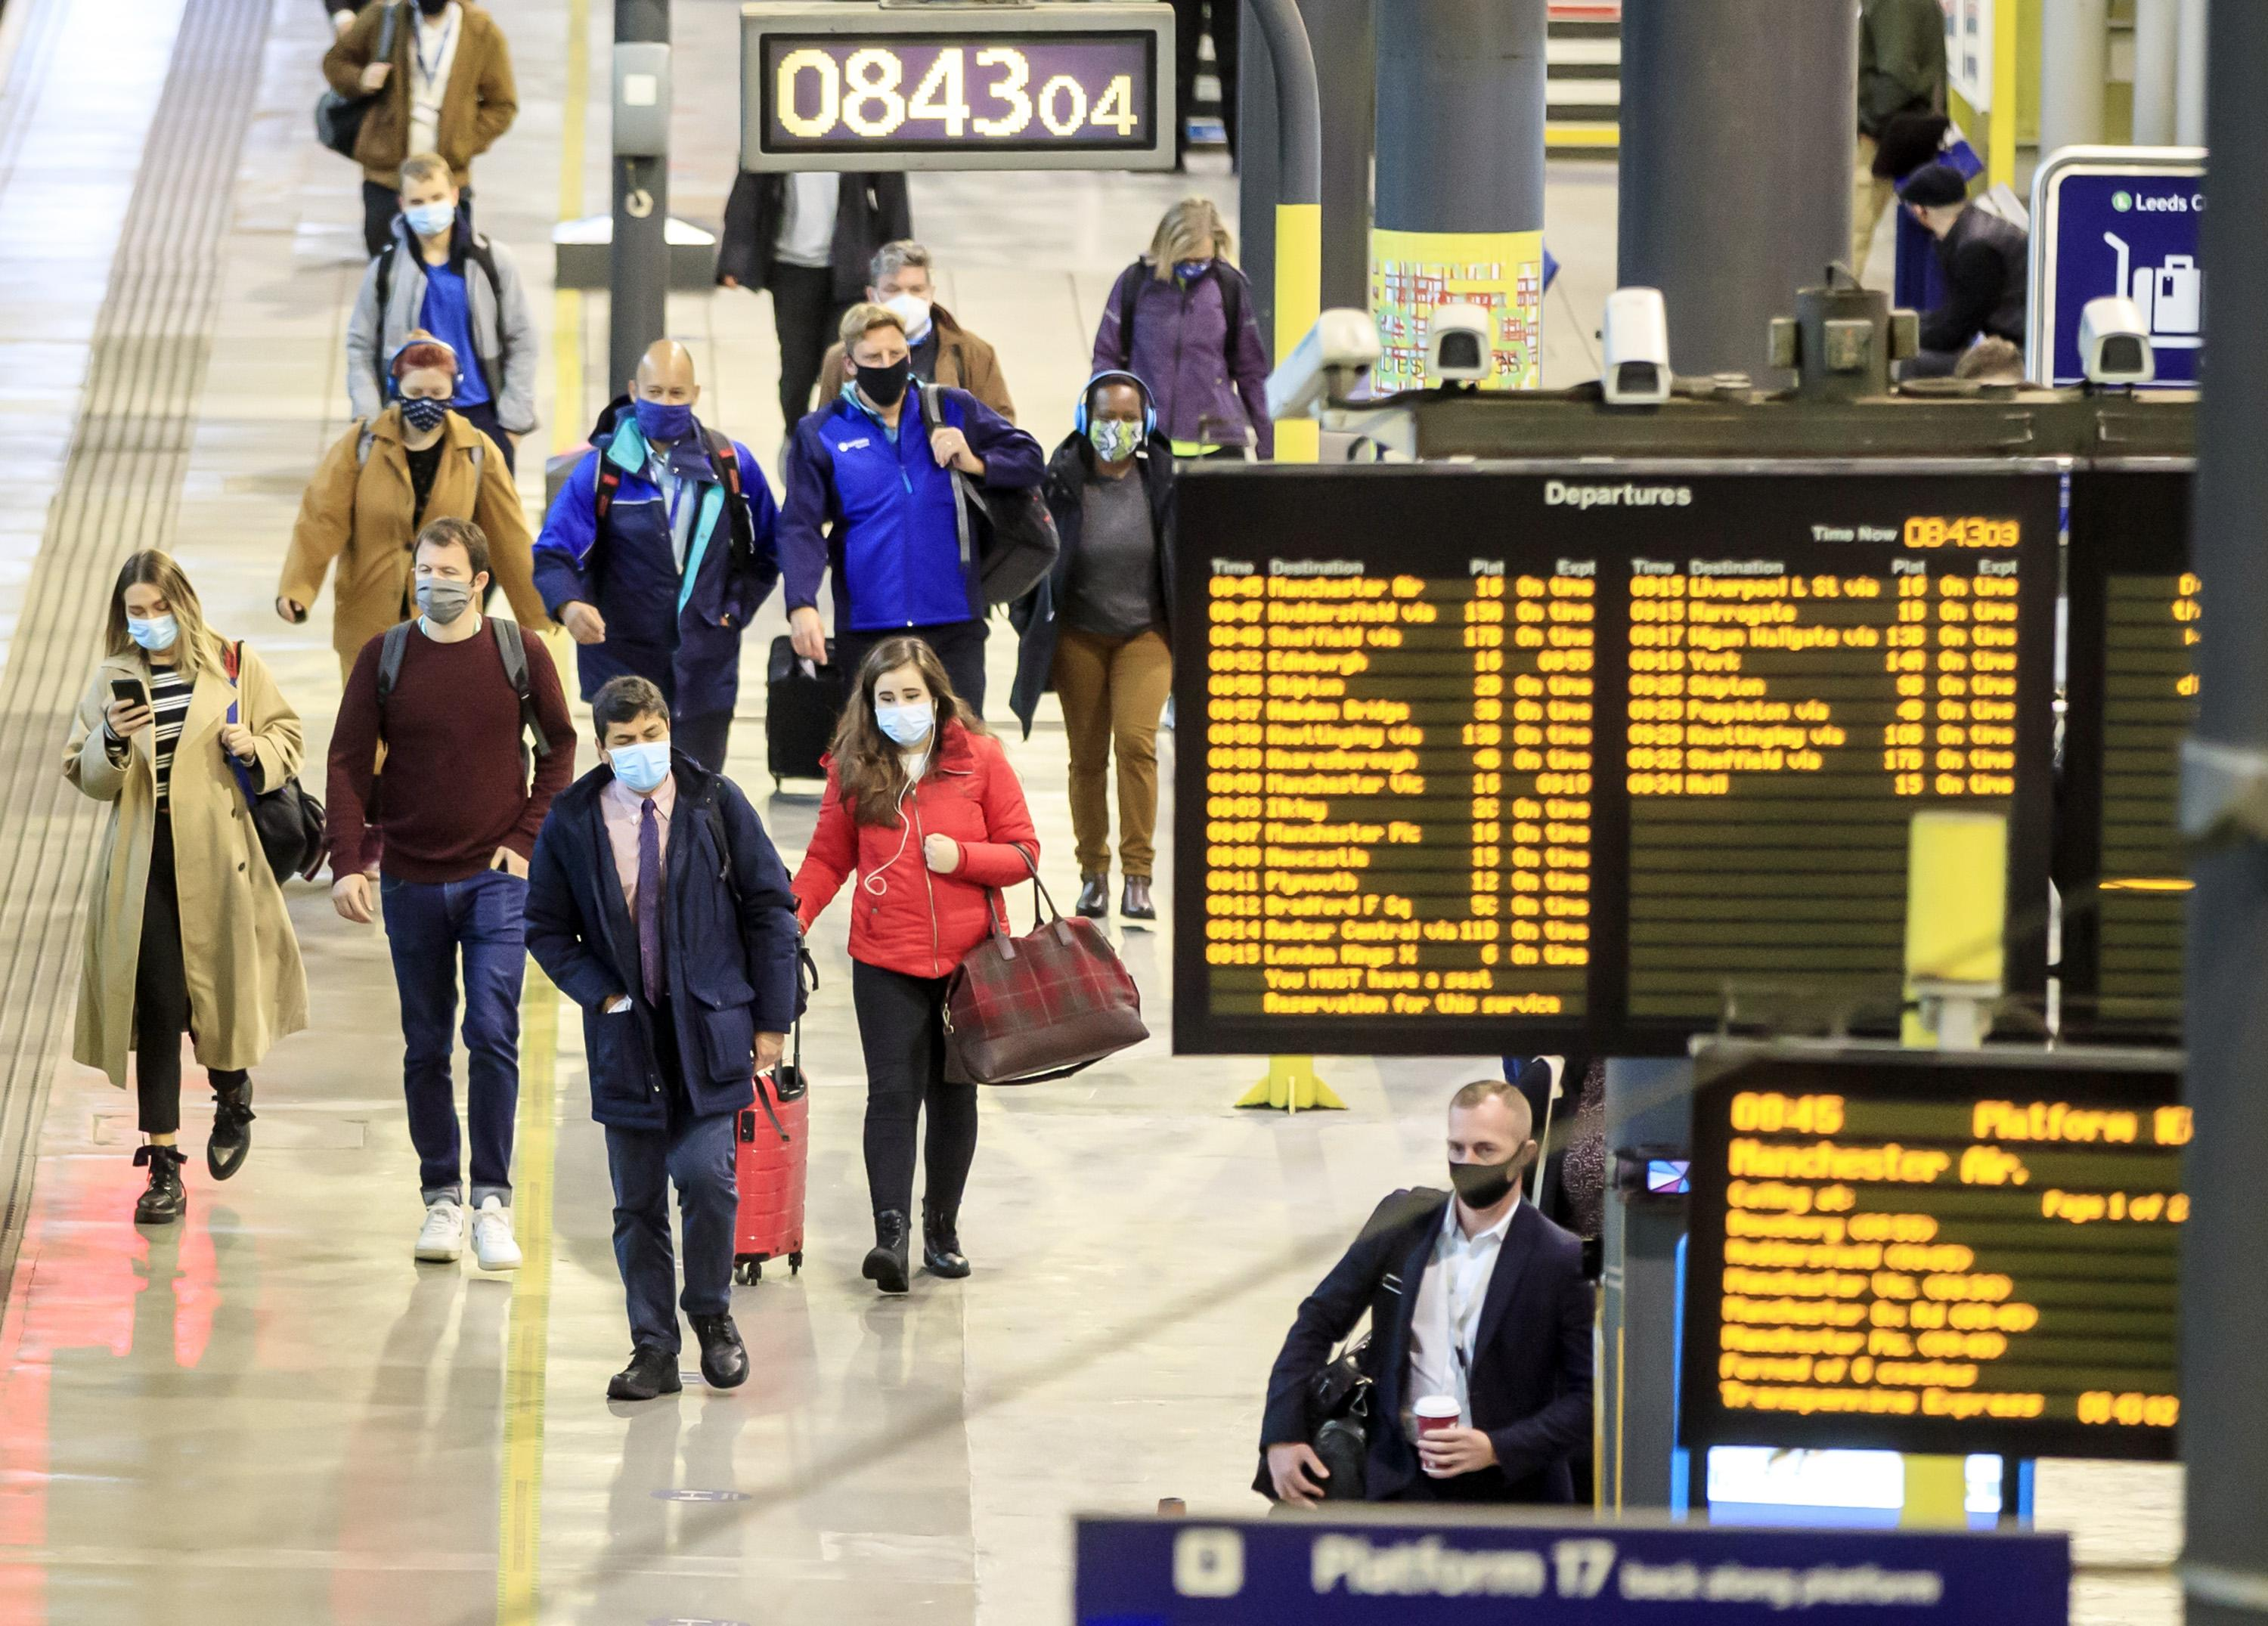 Calls for public ownership of railways as minister says privatisation 'no longer working'